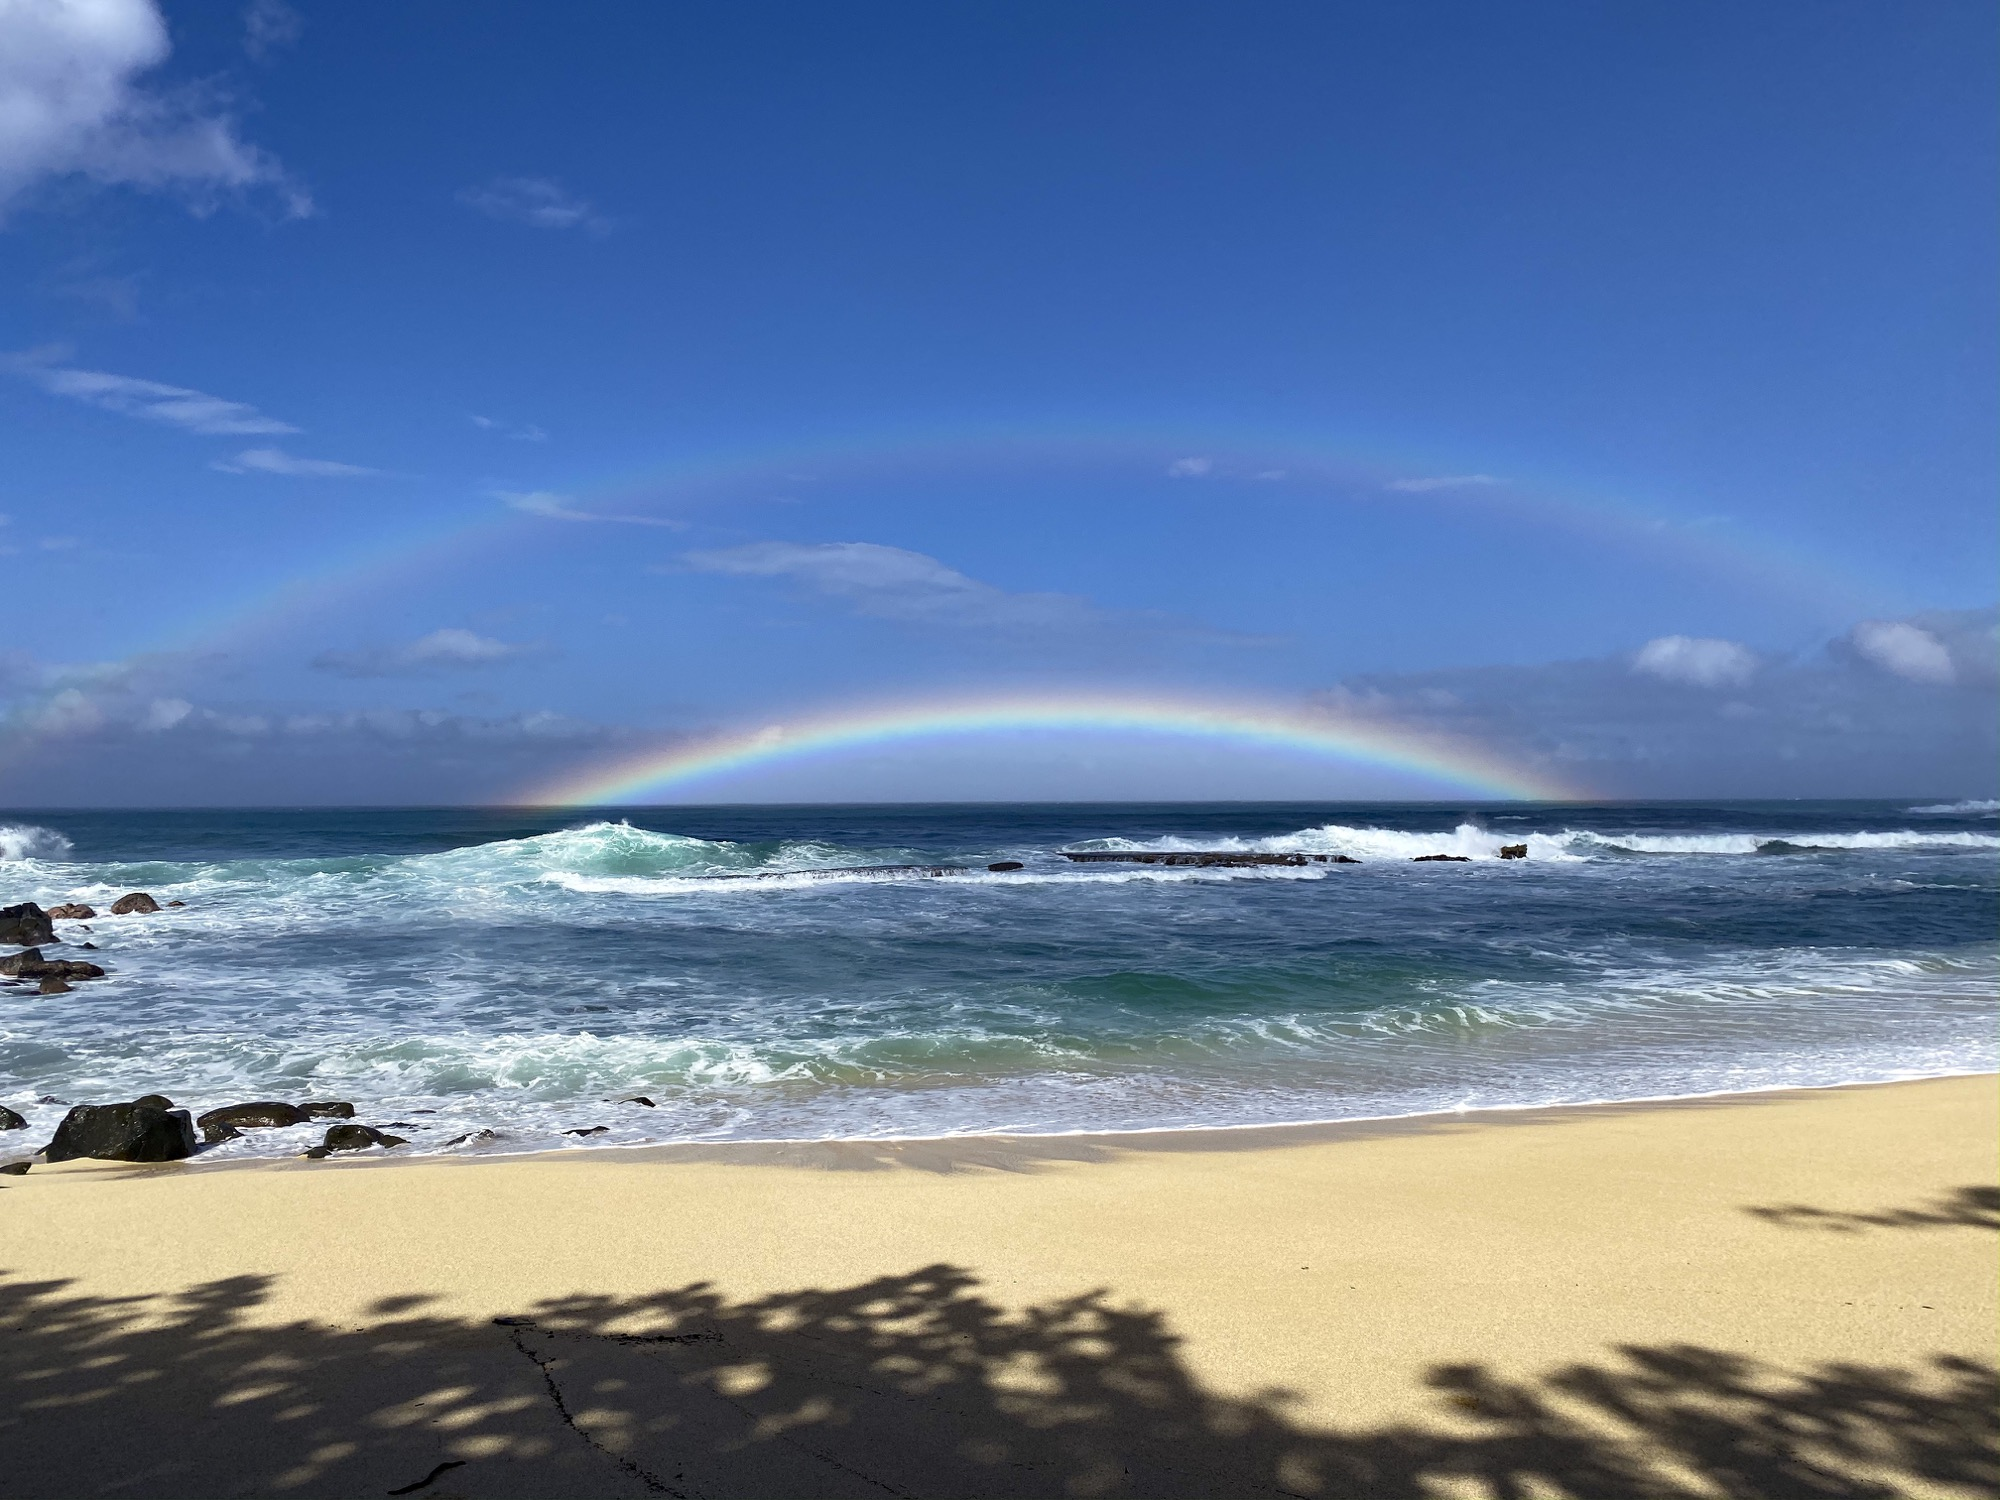 a double rainbow, the primary bow hanging low in the horizon over a beach